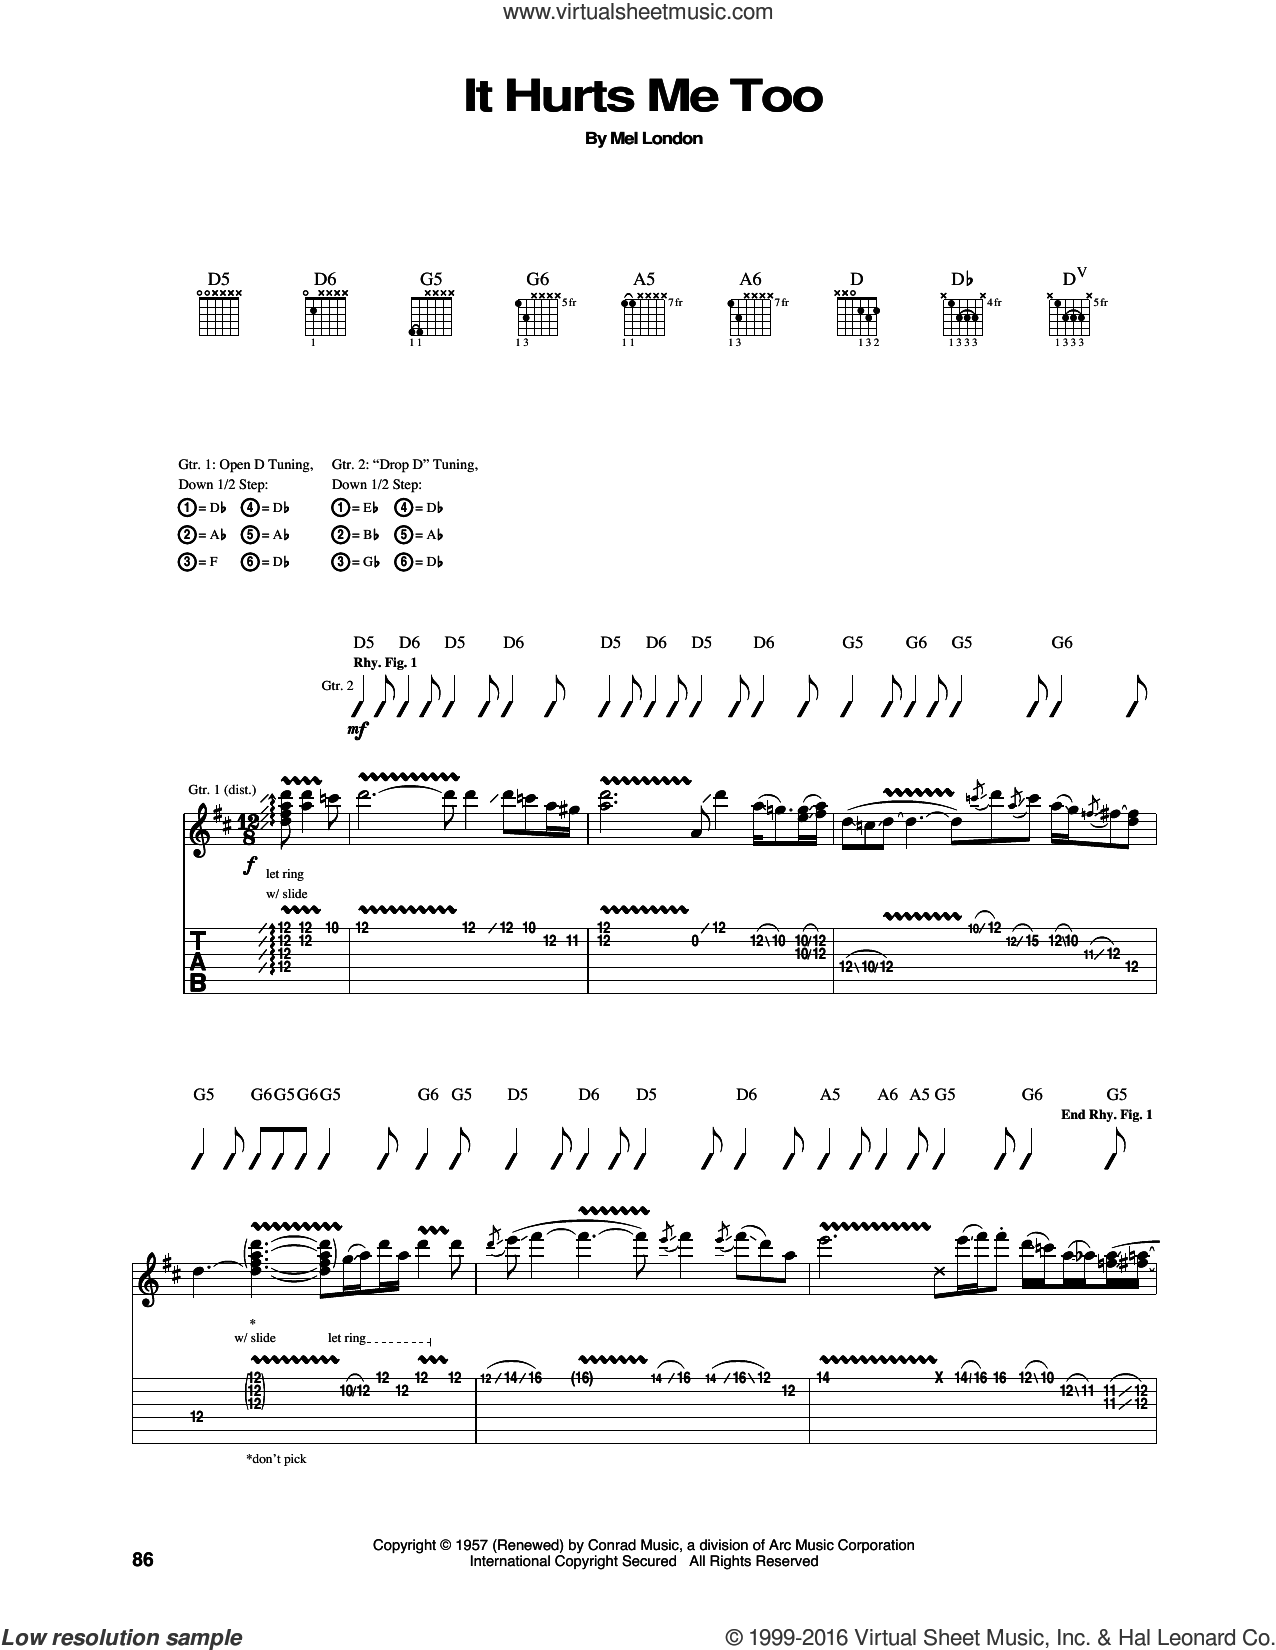 It Hurts Me Too sheet music for guitar (tablature) by Mel London, Elmore James, Elvis Presley and Eric Clapton. Score Image Preview.